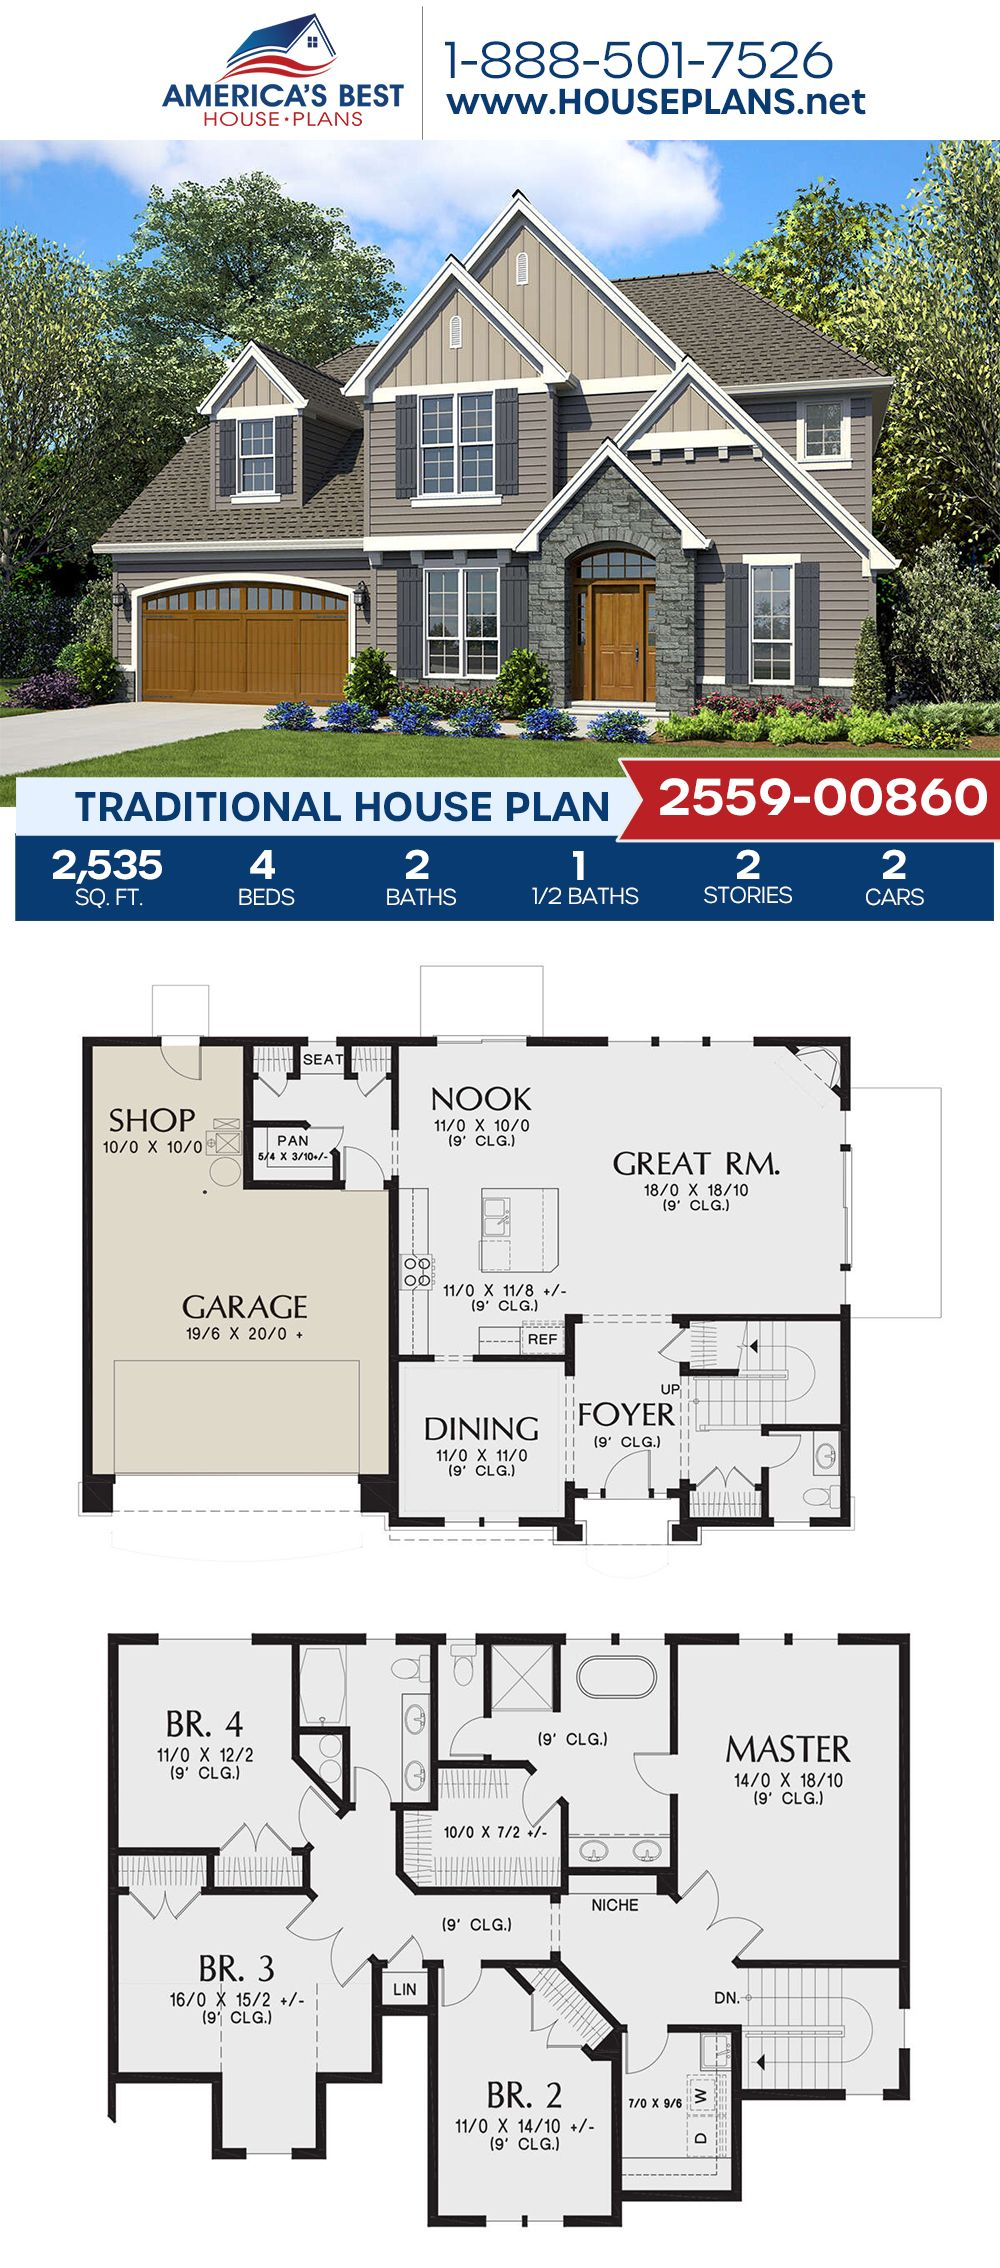 House Plan 2559 00860 Traditional Plan 2 535 Square Feet 4 Bedrooms 2 5 Bathrooms In 2020 Porch House Plans House Layout Plans Traditional House Plans